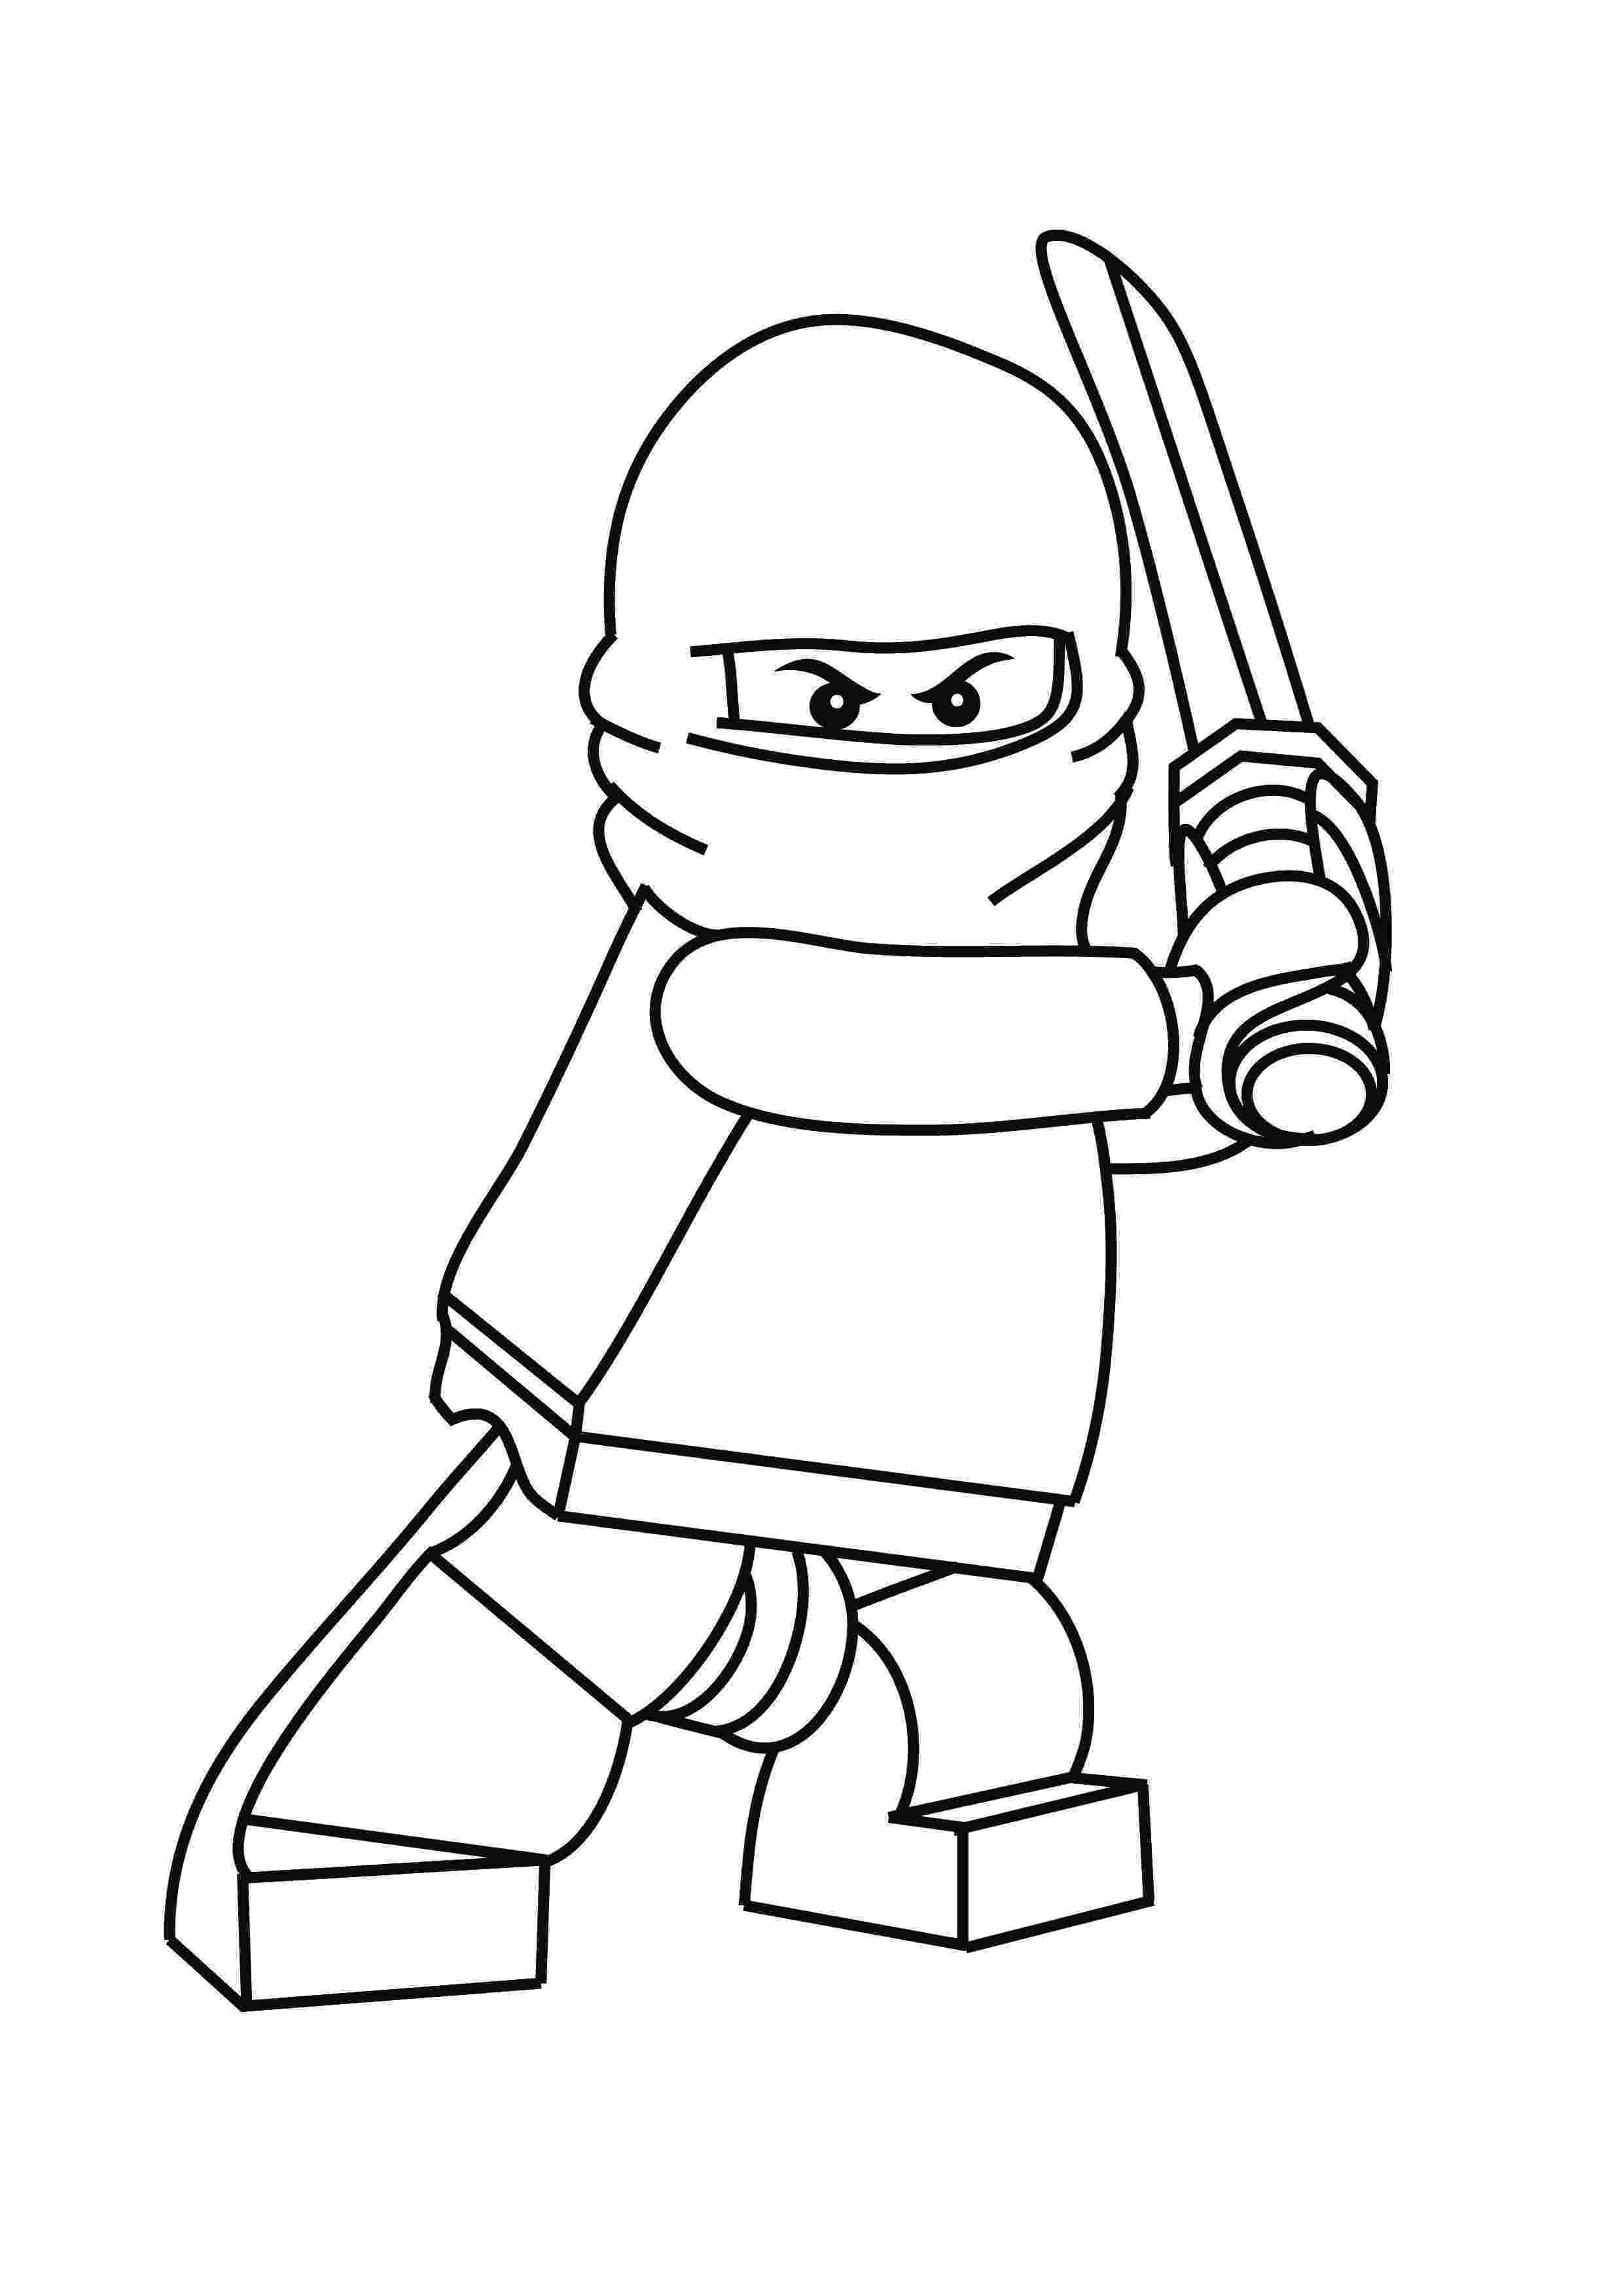 lego pictures to colour lego batman coloring pages best coloring pages for kids lego pictures to colour